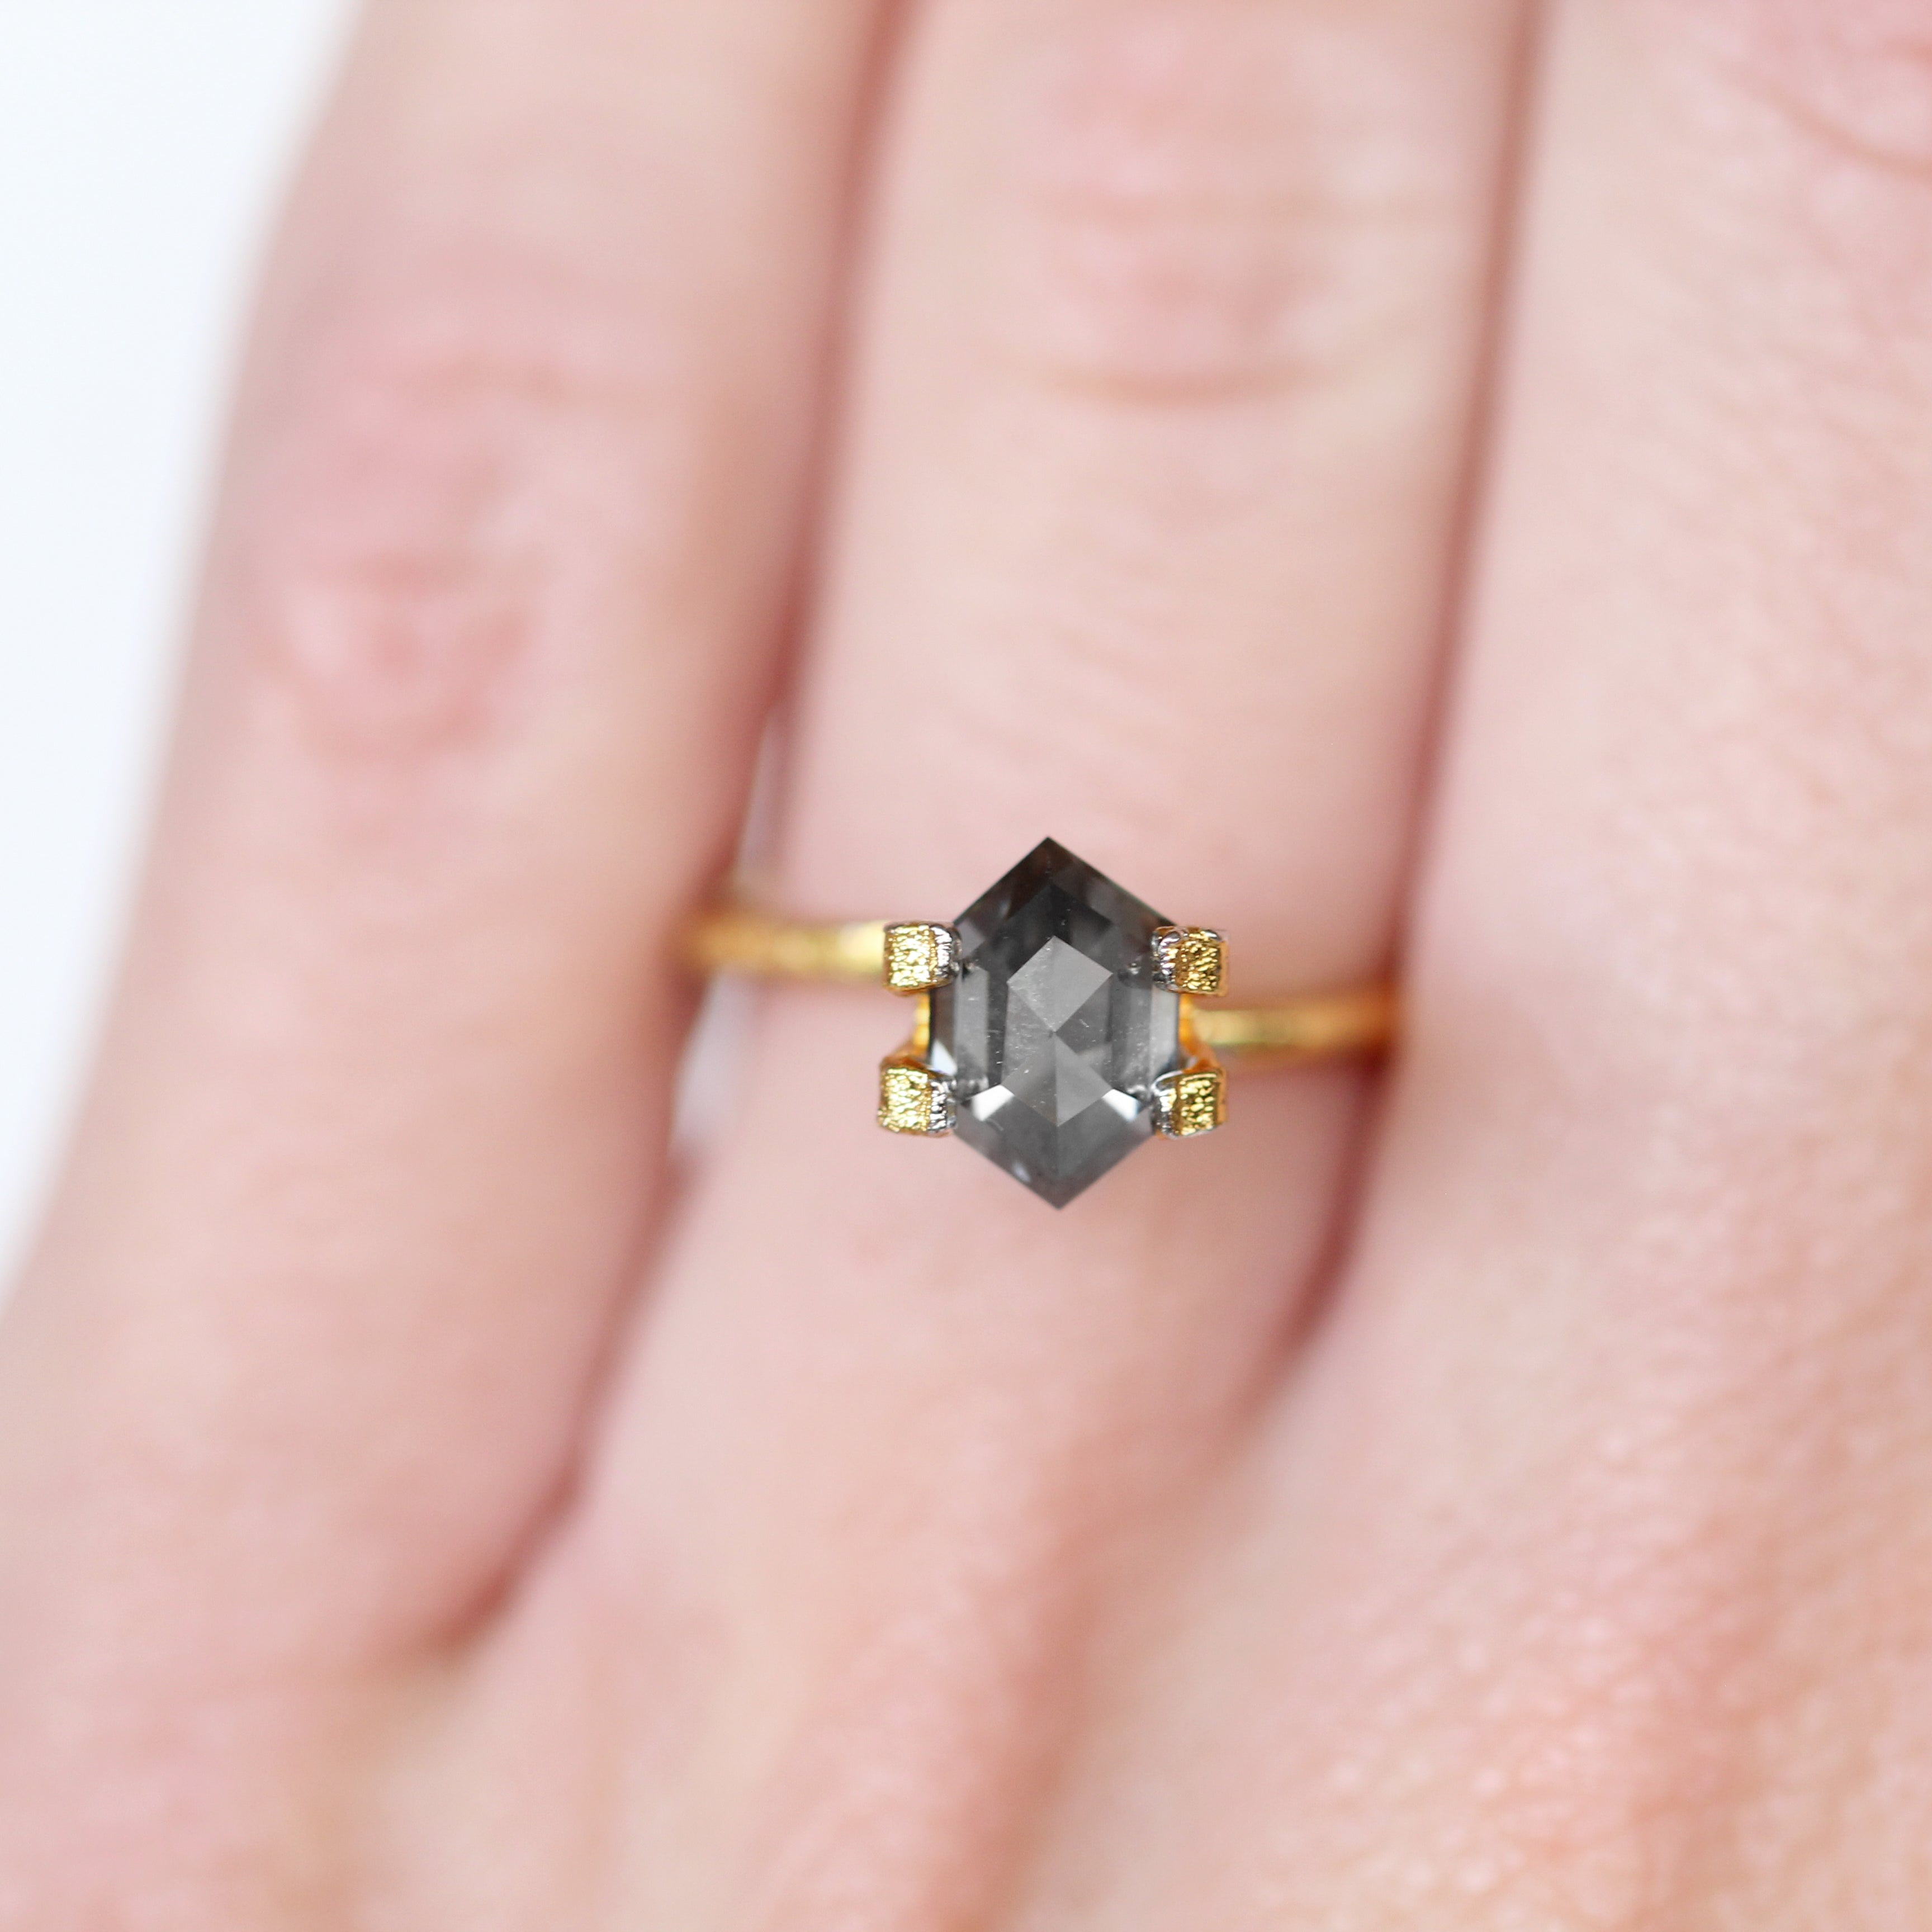 1.15 Carat Hexagon Moissanite - Inventory Code HXMOI115 - Midwinter Co. Alternative Bridal Rings and Modern Fine Jewelry